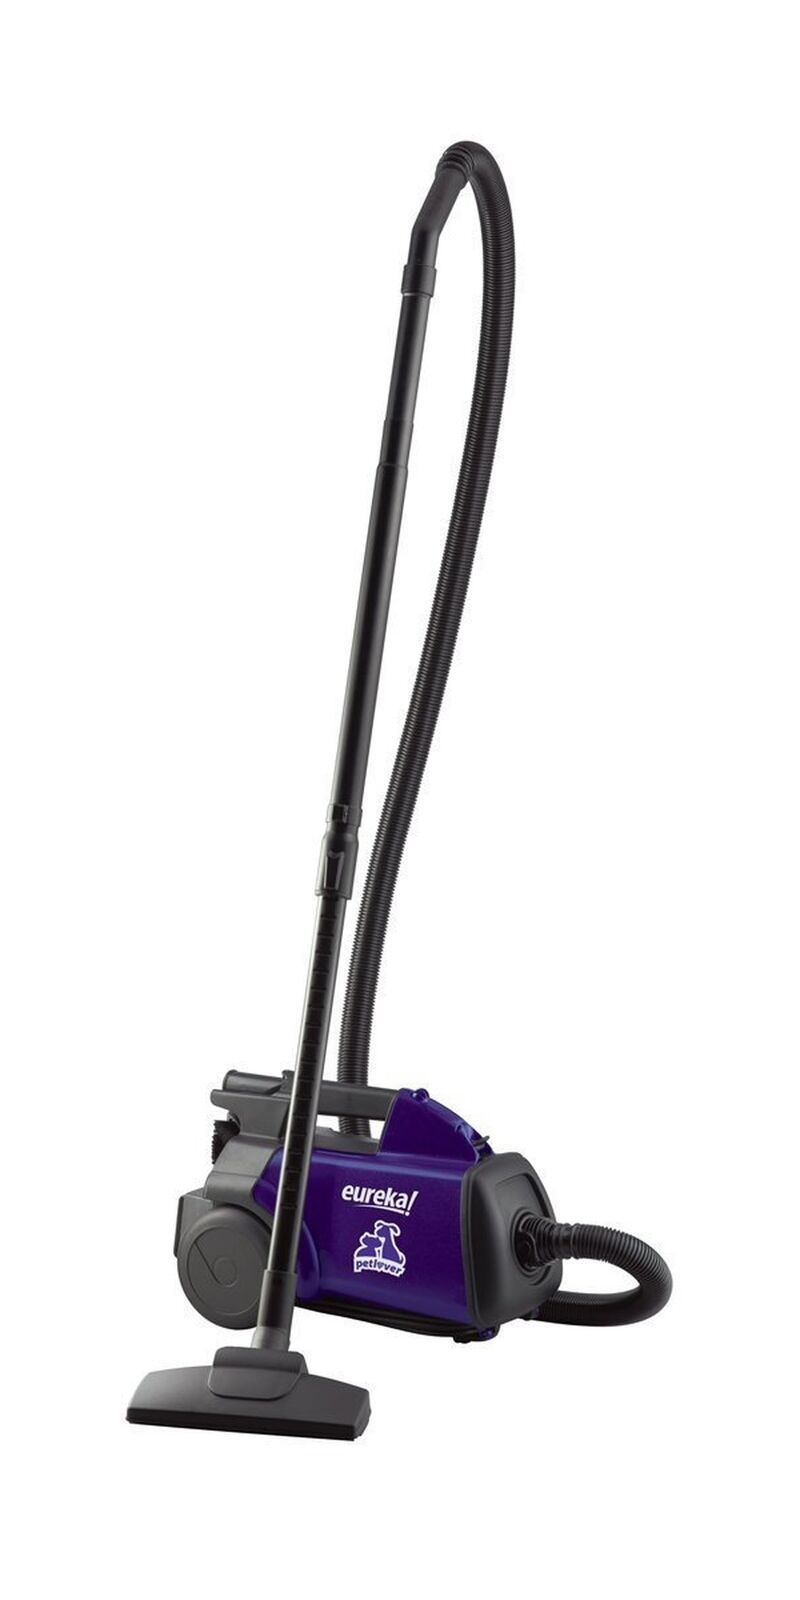 Eureka Mighty Mite Bagged Canister Vacuum Cleaner, Pet, purple